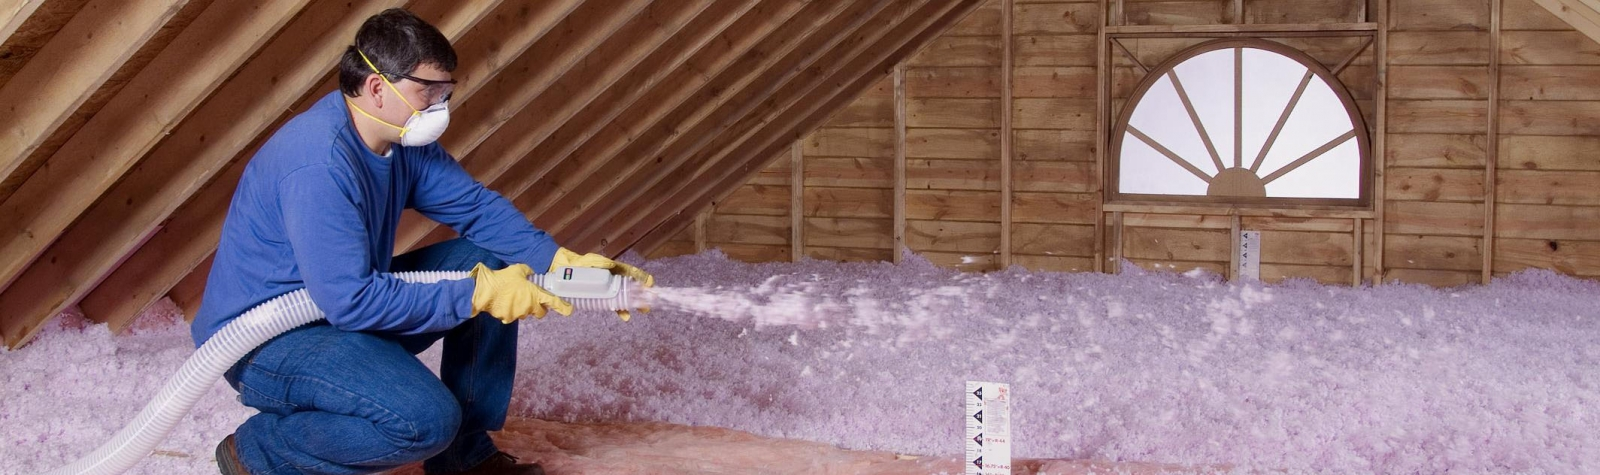 Air Factory Blown Insulation Install in Oklahoma City